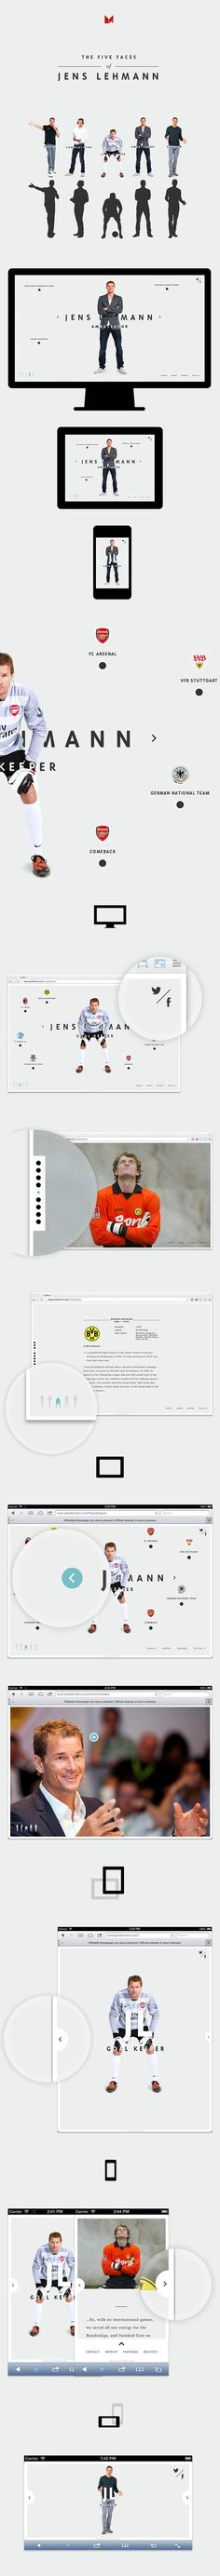 Jens Lehmann Personal Website on Behance #website #football #web